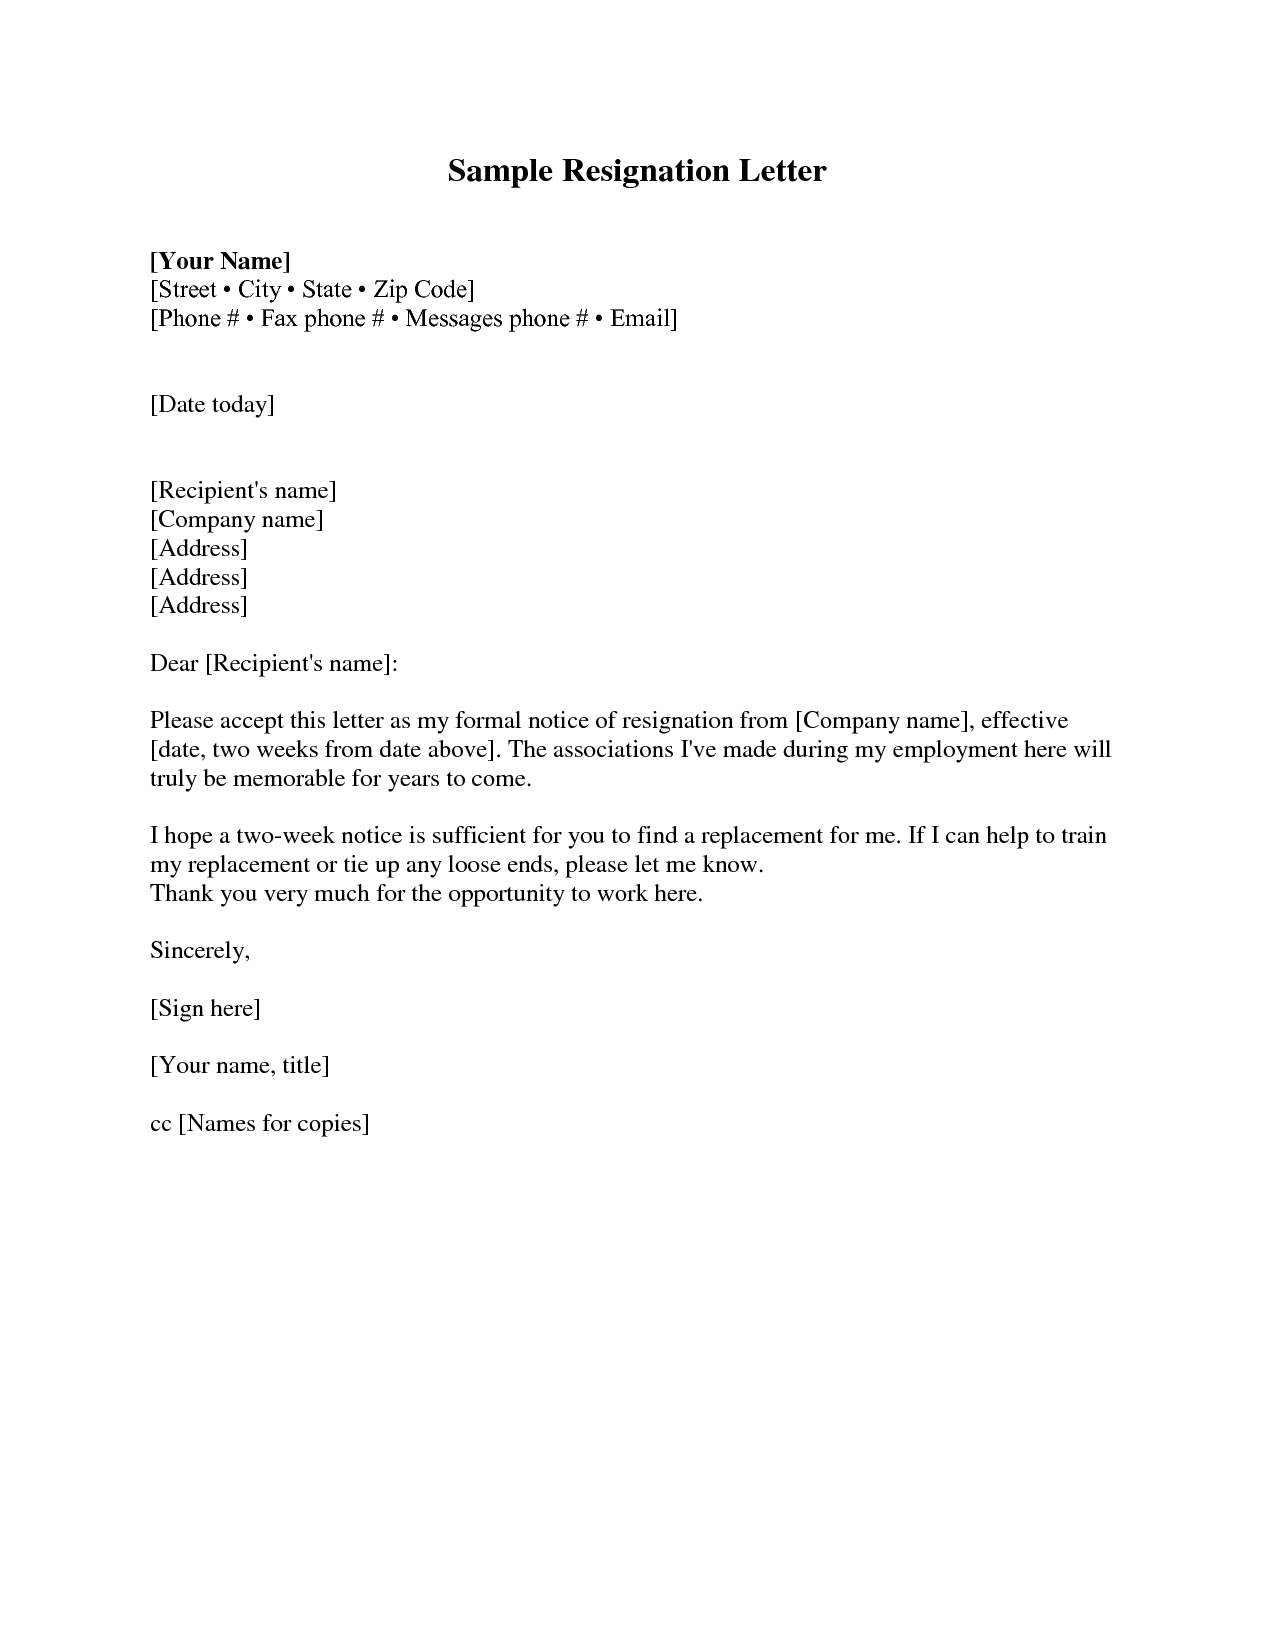 Sample Resignation Letter Template - Resignation Letter Sample 2 Weeks Notice Free2img